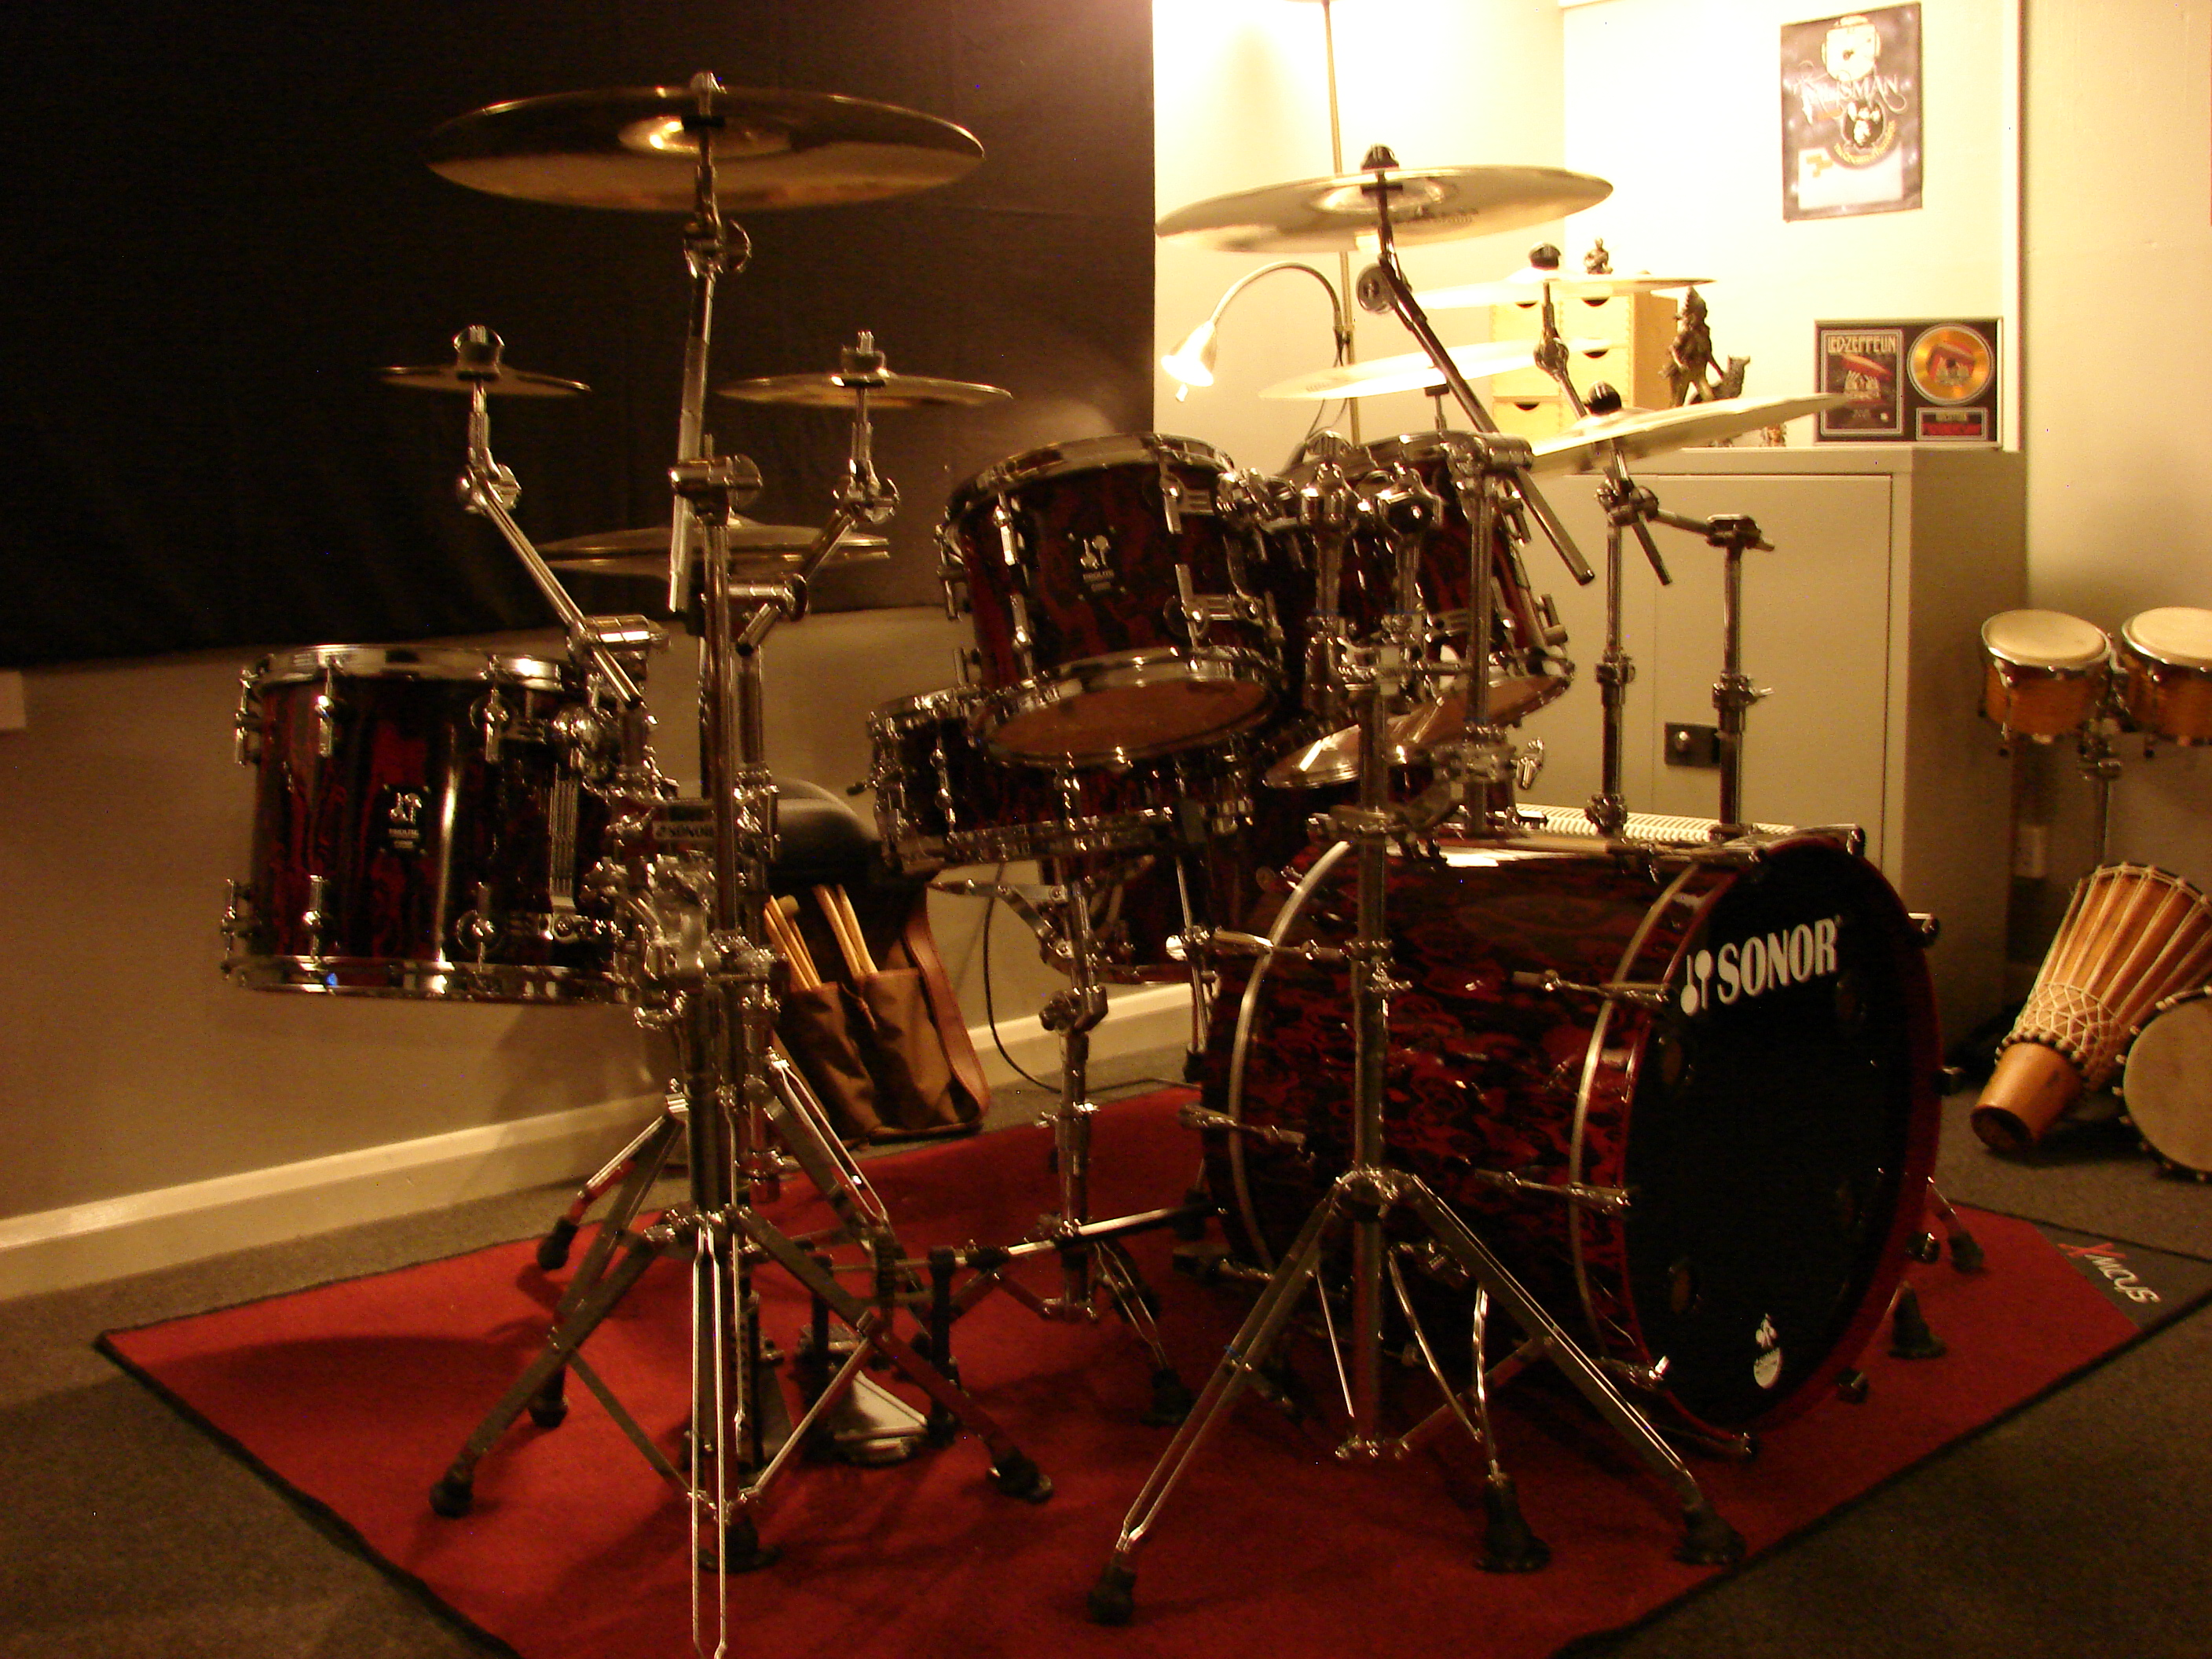 SONOR Kit